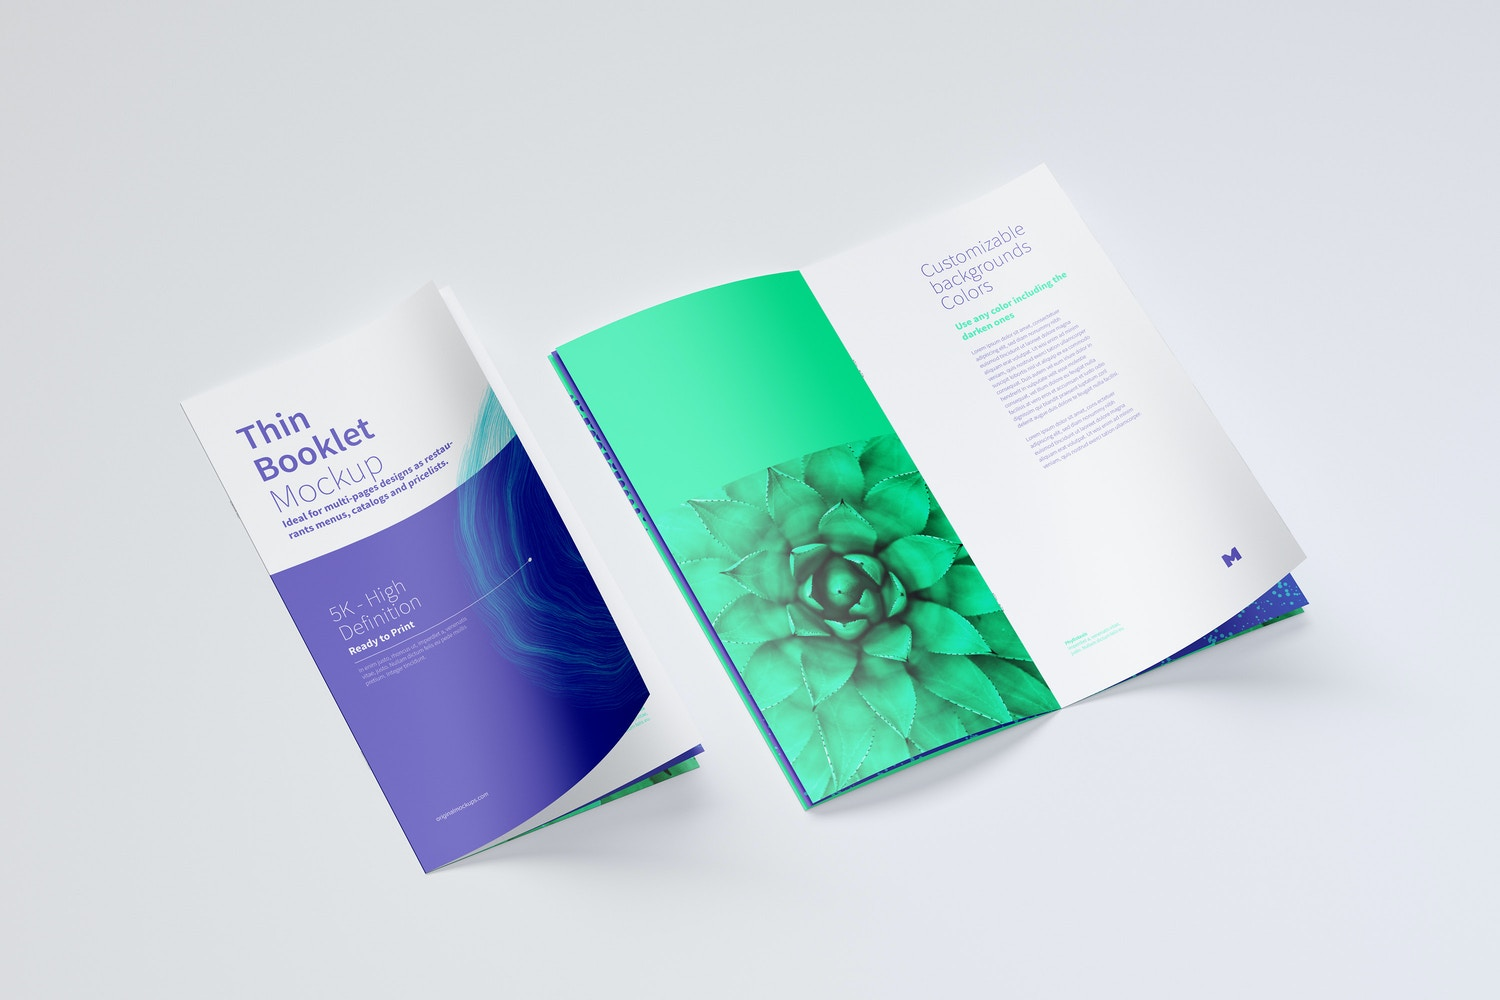 Show the cover and internal page of your design